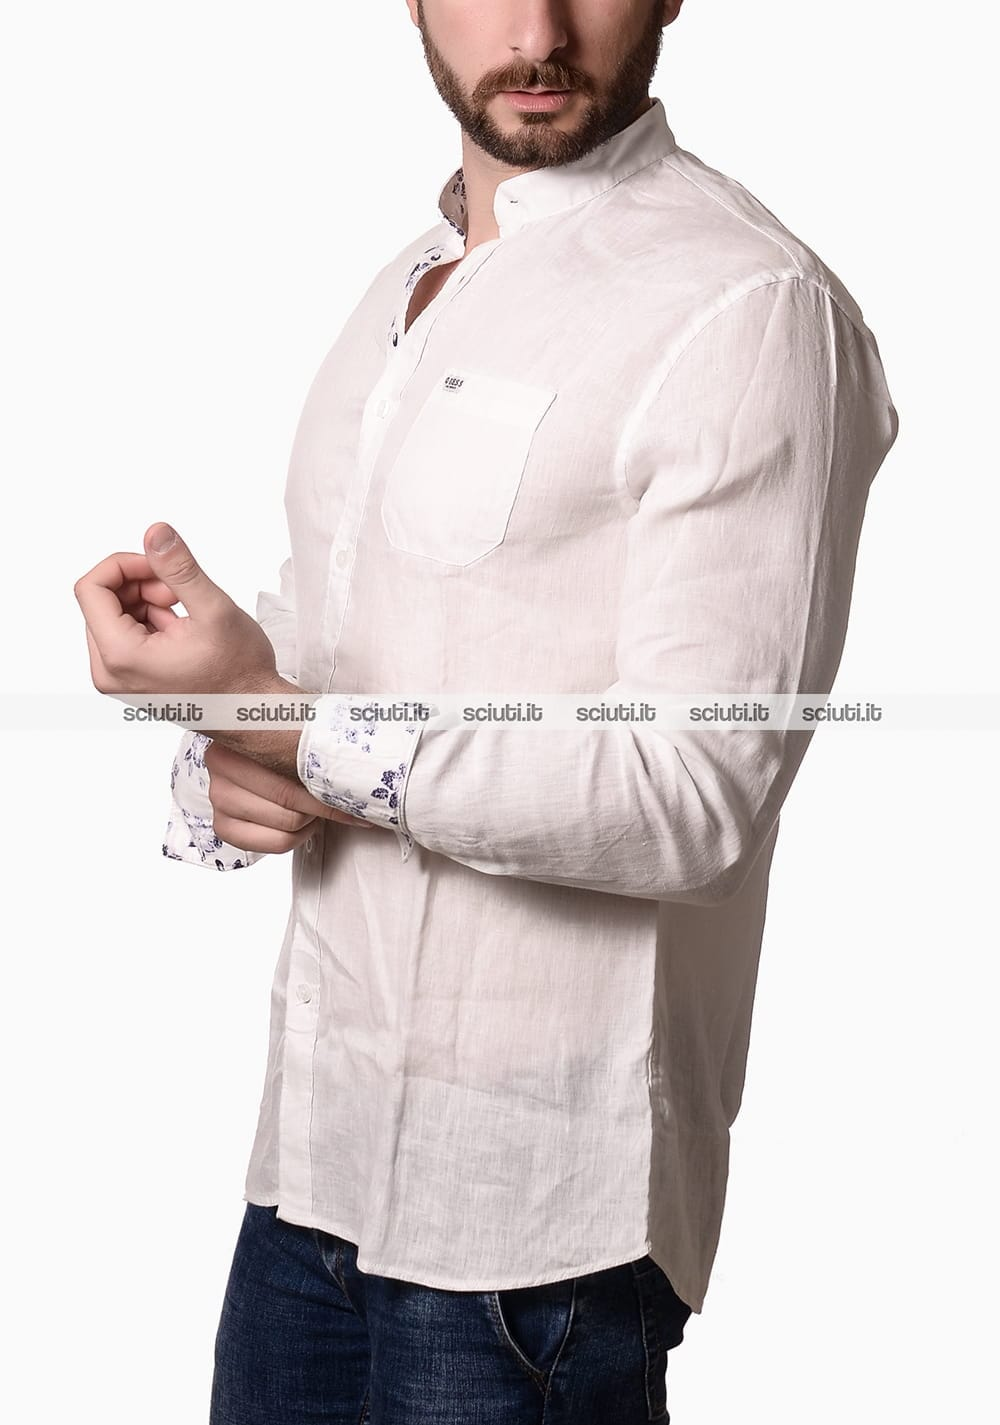 timeless design 1d2bd e5e76 Camicia Guess uomo collo alla coreana in lino bianco | Sciuti.it